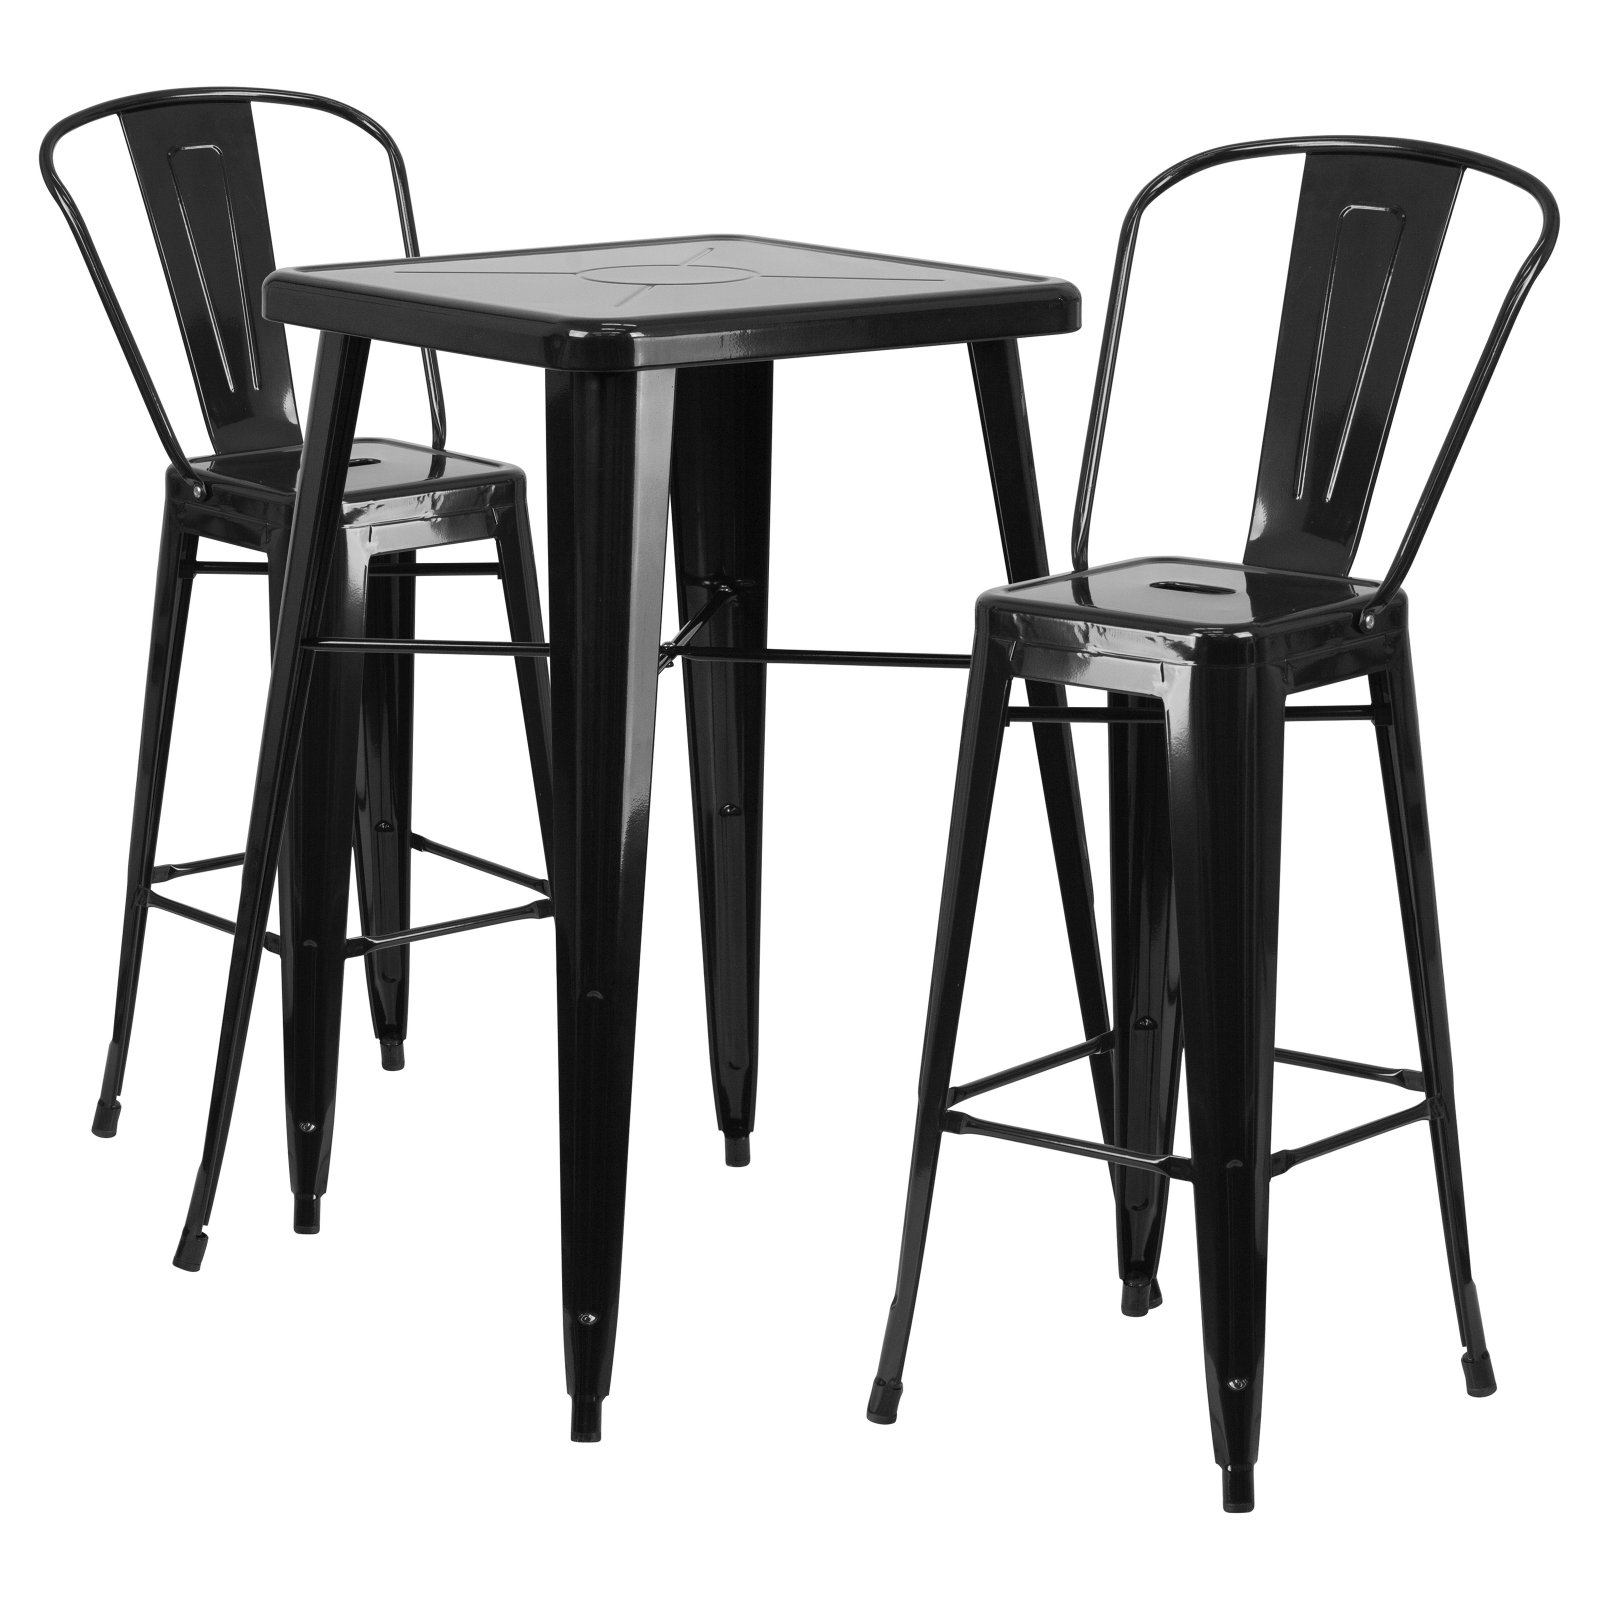 Flash Furniture Metal 3-Piece Bar Height Indoor/Outdoor Bistro Set, Multiple Colors